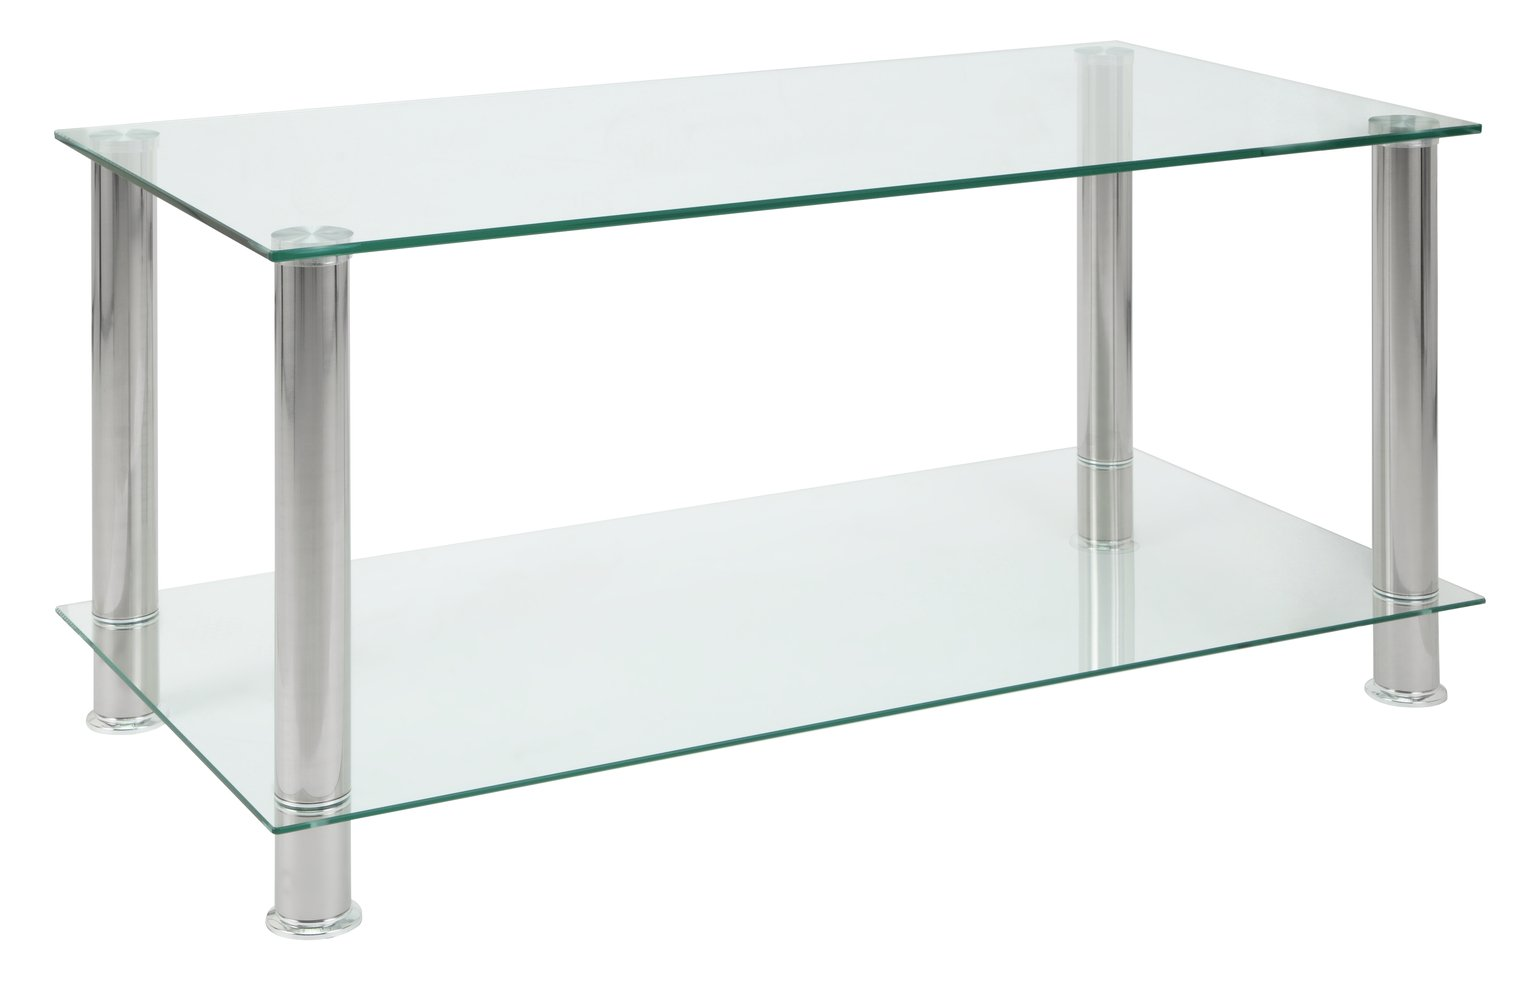 Glass Coffee Table From Argos: HOME By Argos: Find Offers Online And Compare Prices At